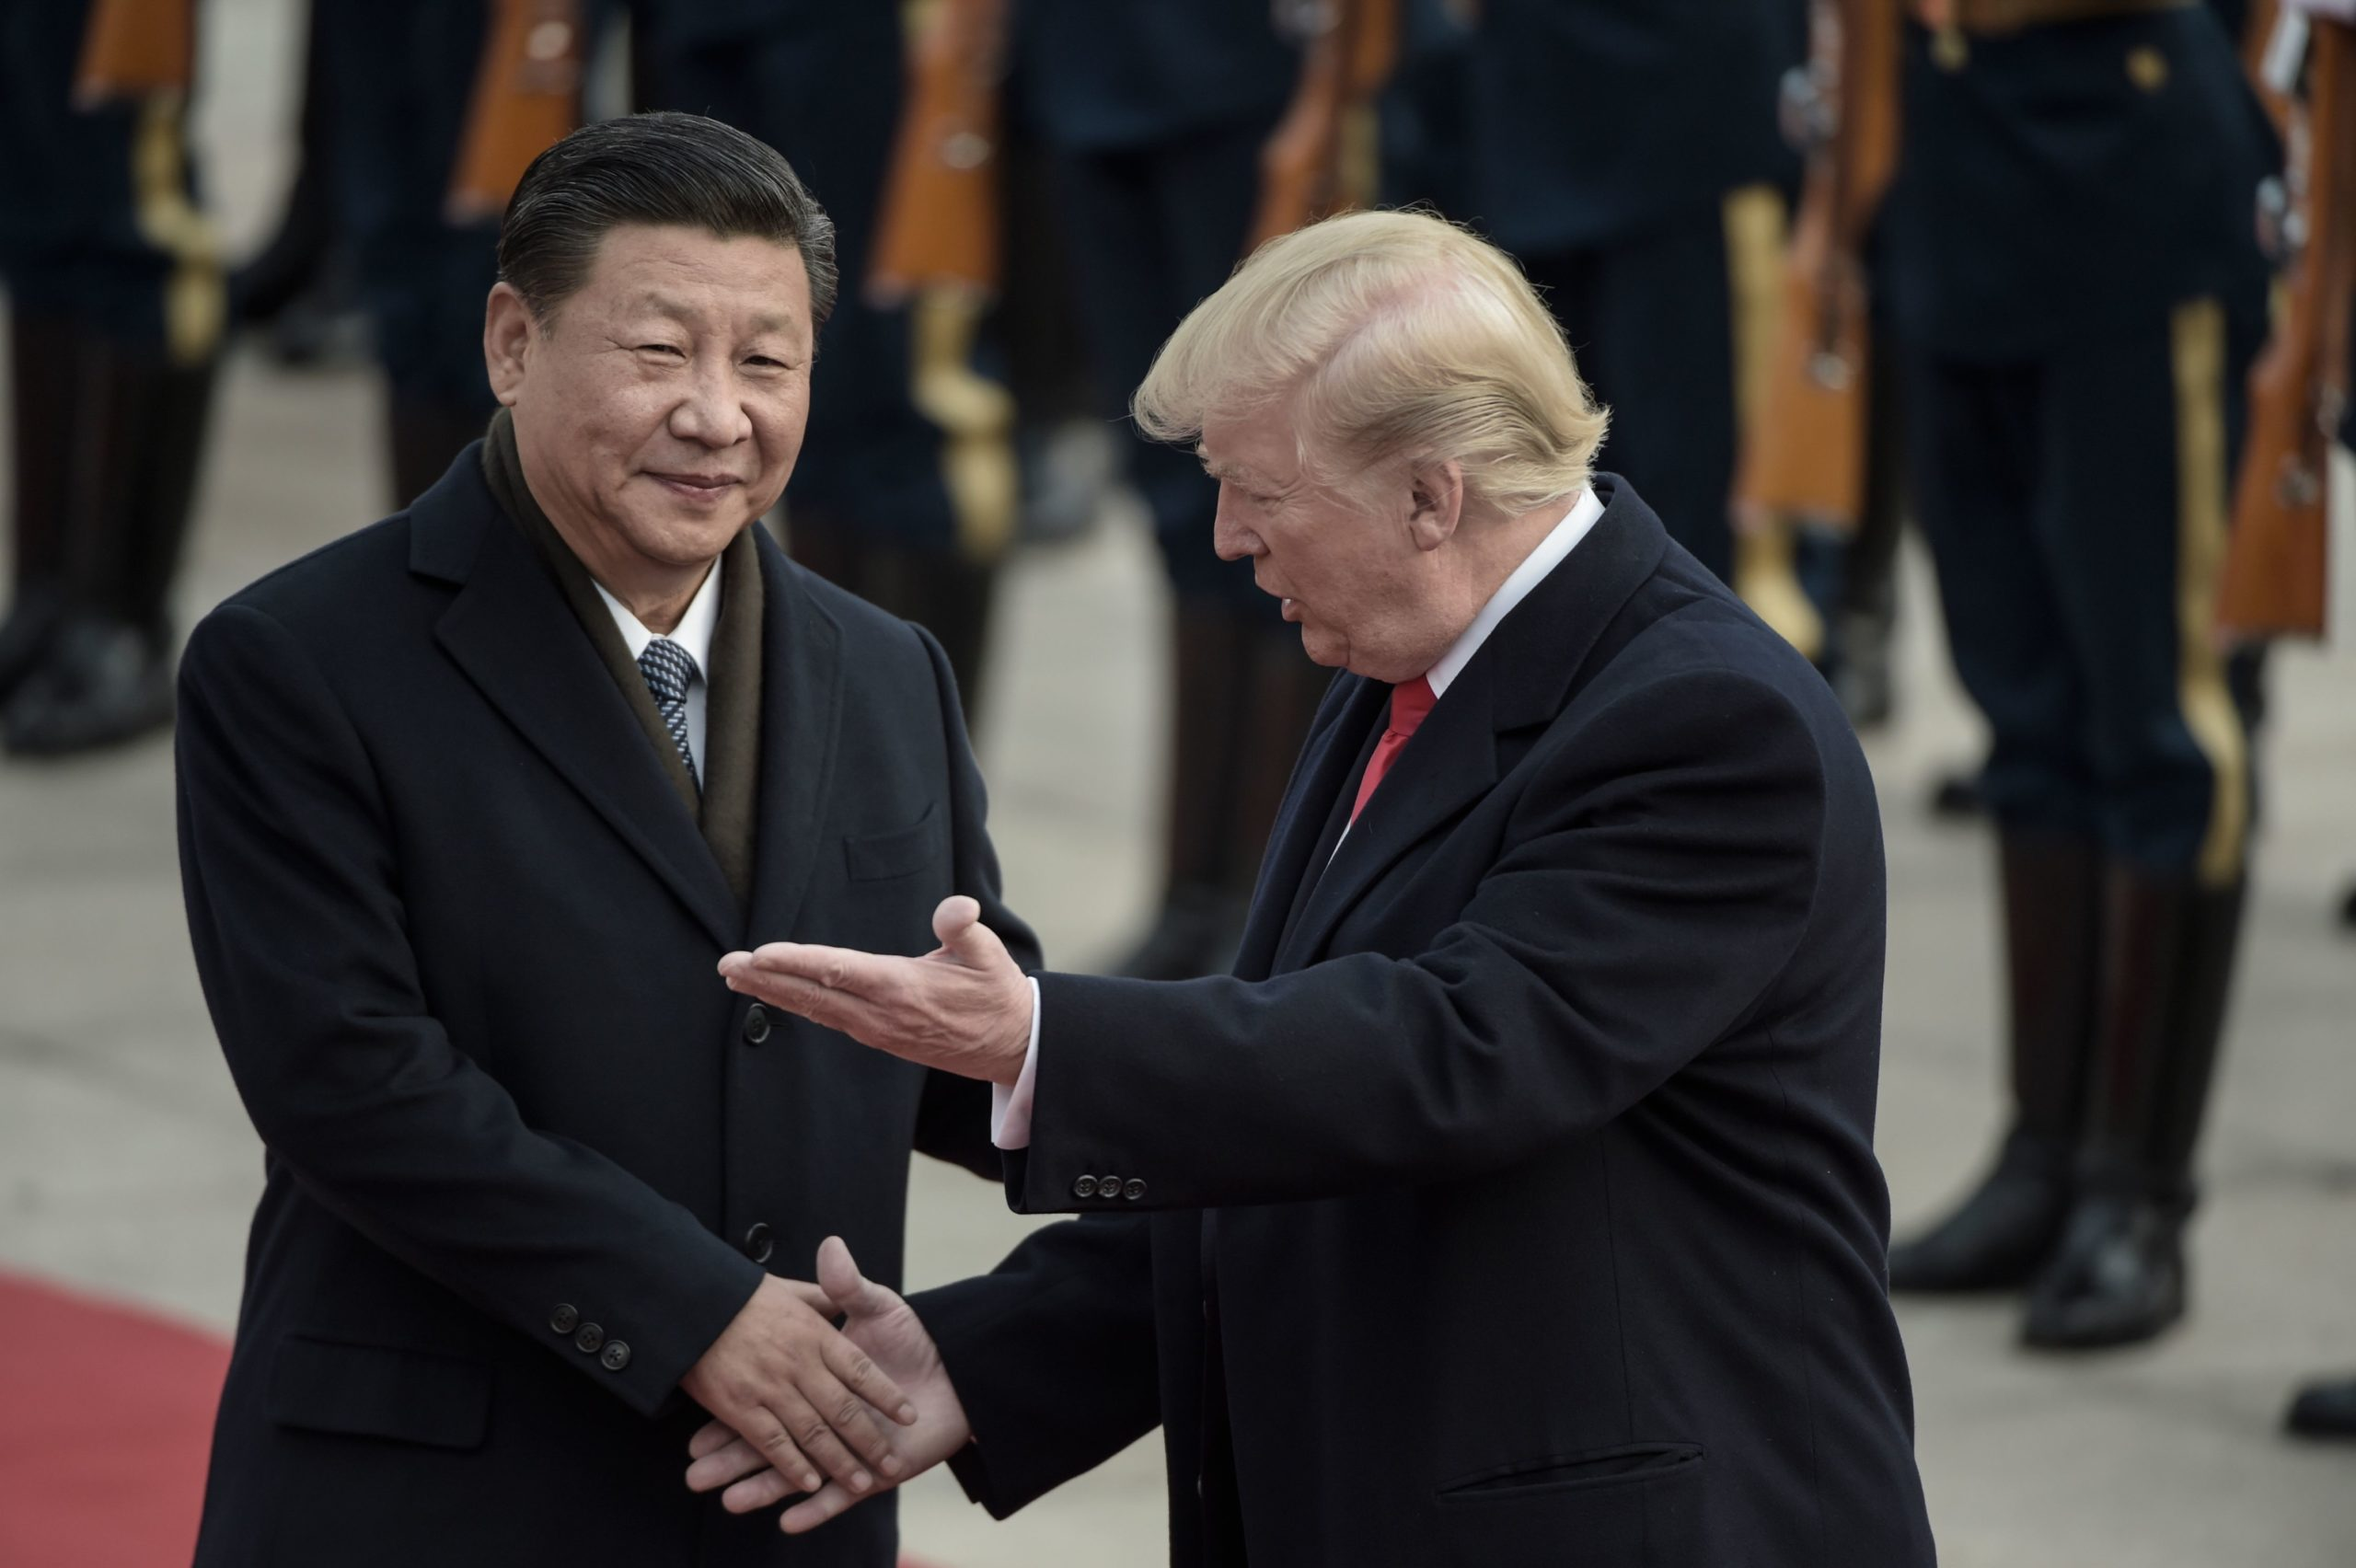 Chinese President Xi Jinping and US President Donald Trump shaking hands at a welcome ceremony at the Great Hall of the People in Beijing in 2017.